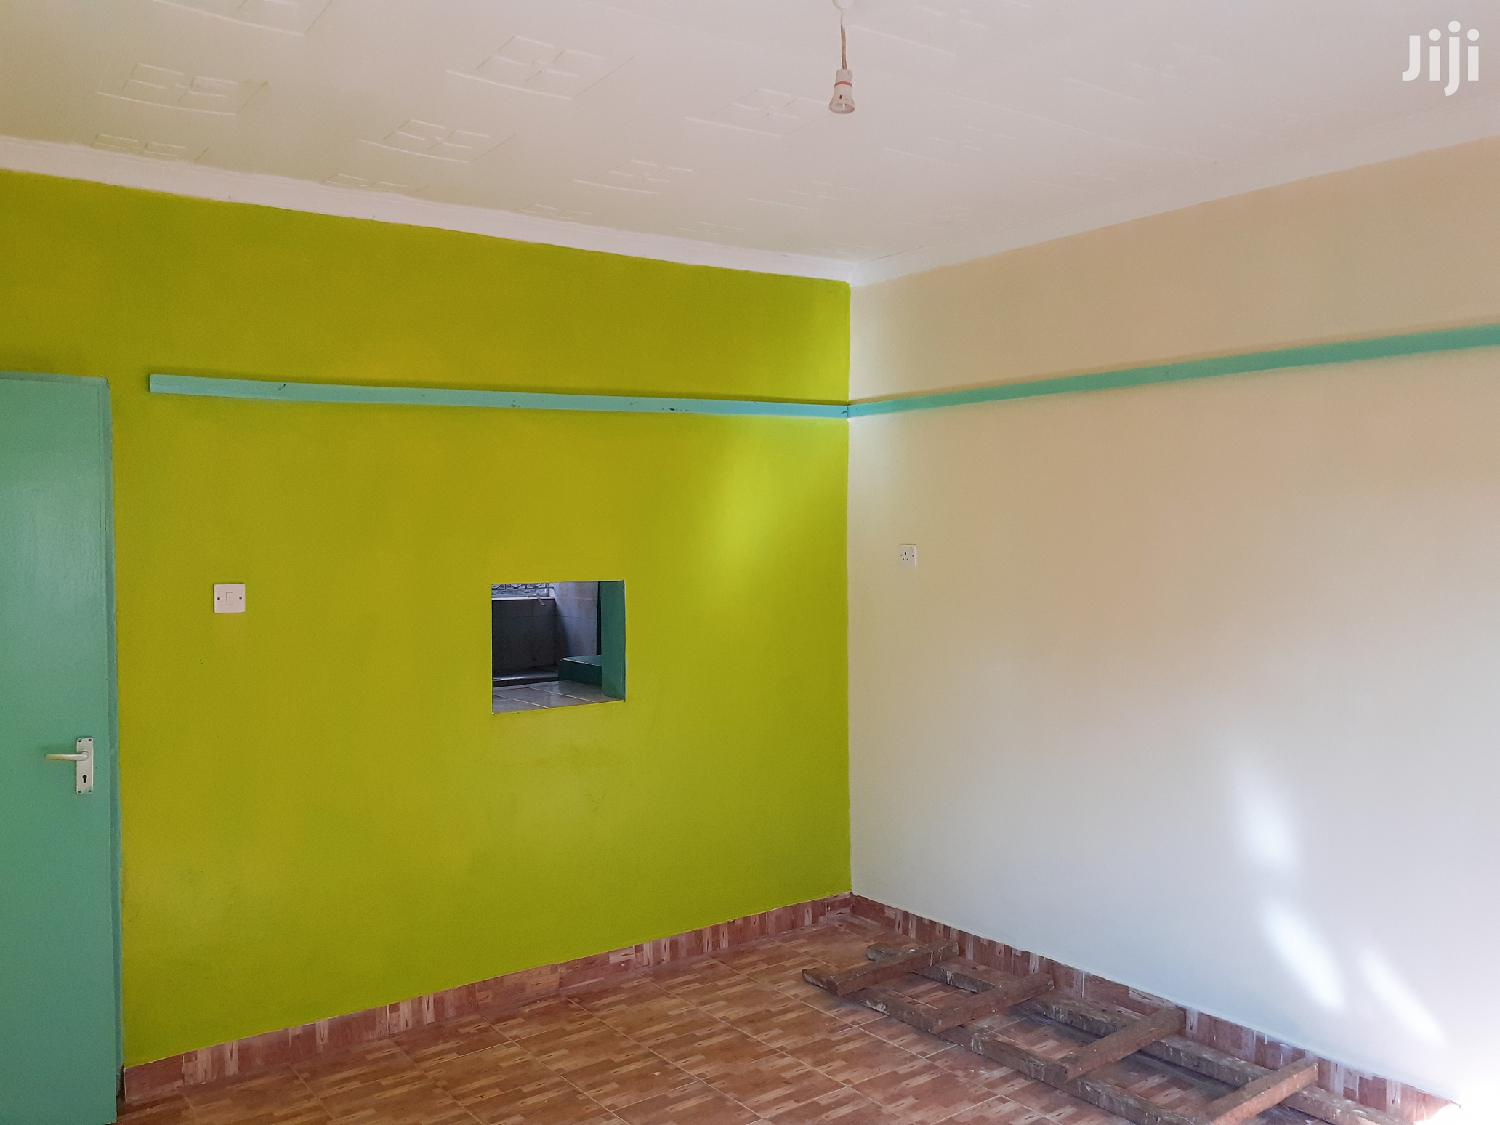 2-bedroom House To Let In Lessos, Kitale | Houses & Apartments For Rent for sale in Kitale, Trans-Nzoia, Kenya